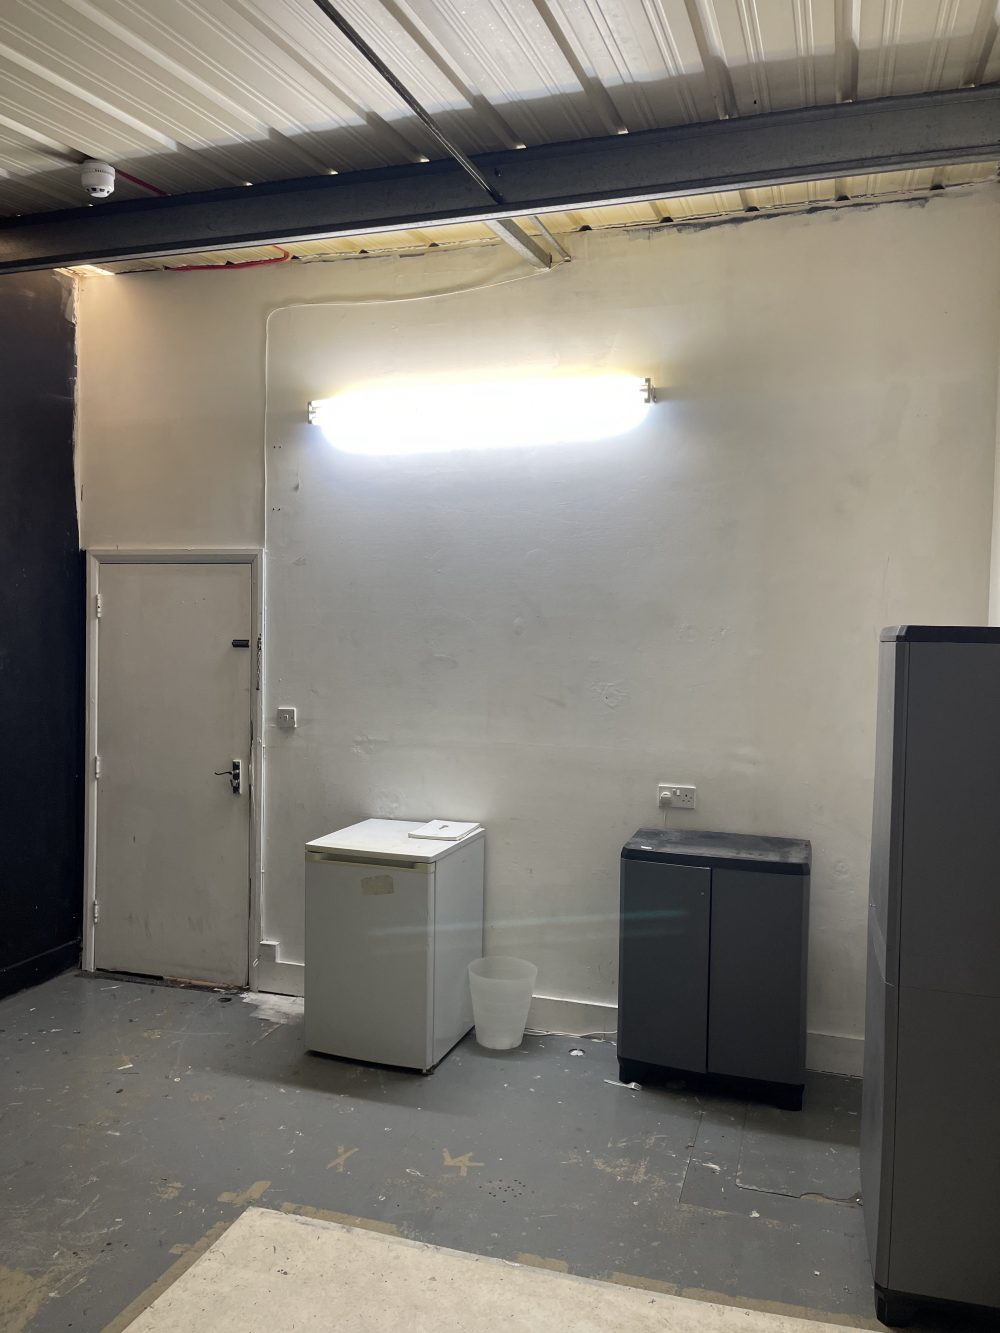 Light indurstrial unit to rent in N16 Stoke Newington Shelford Place PIc11